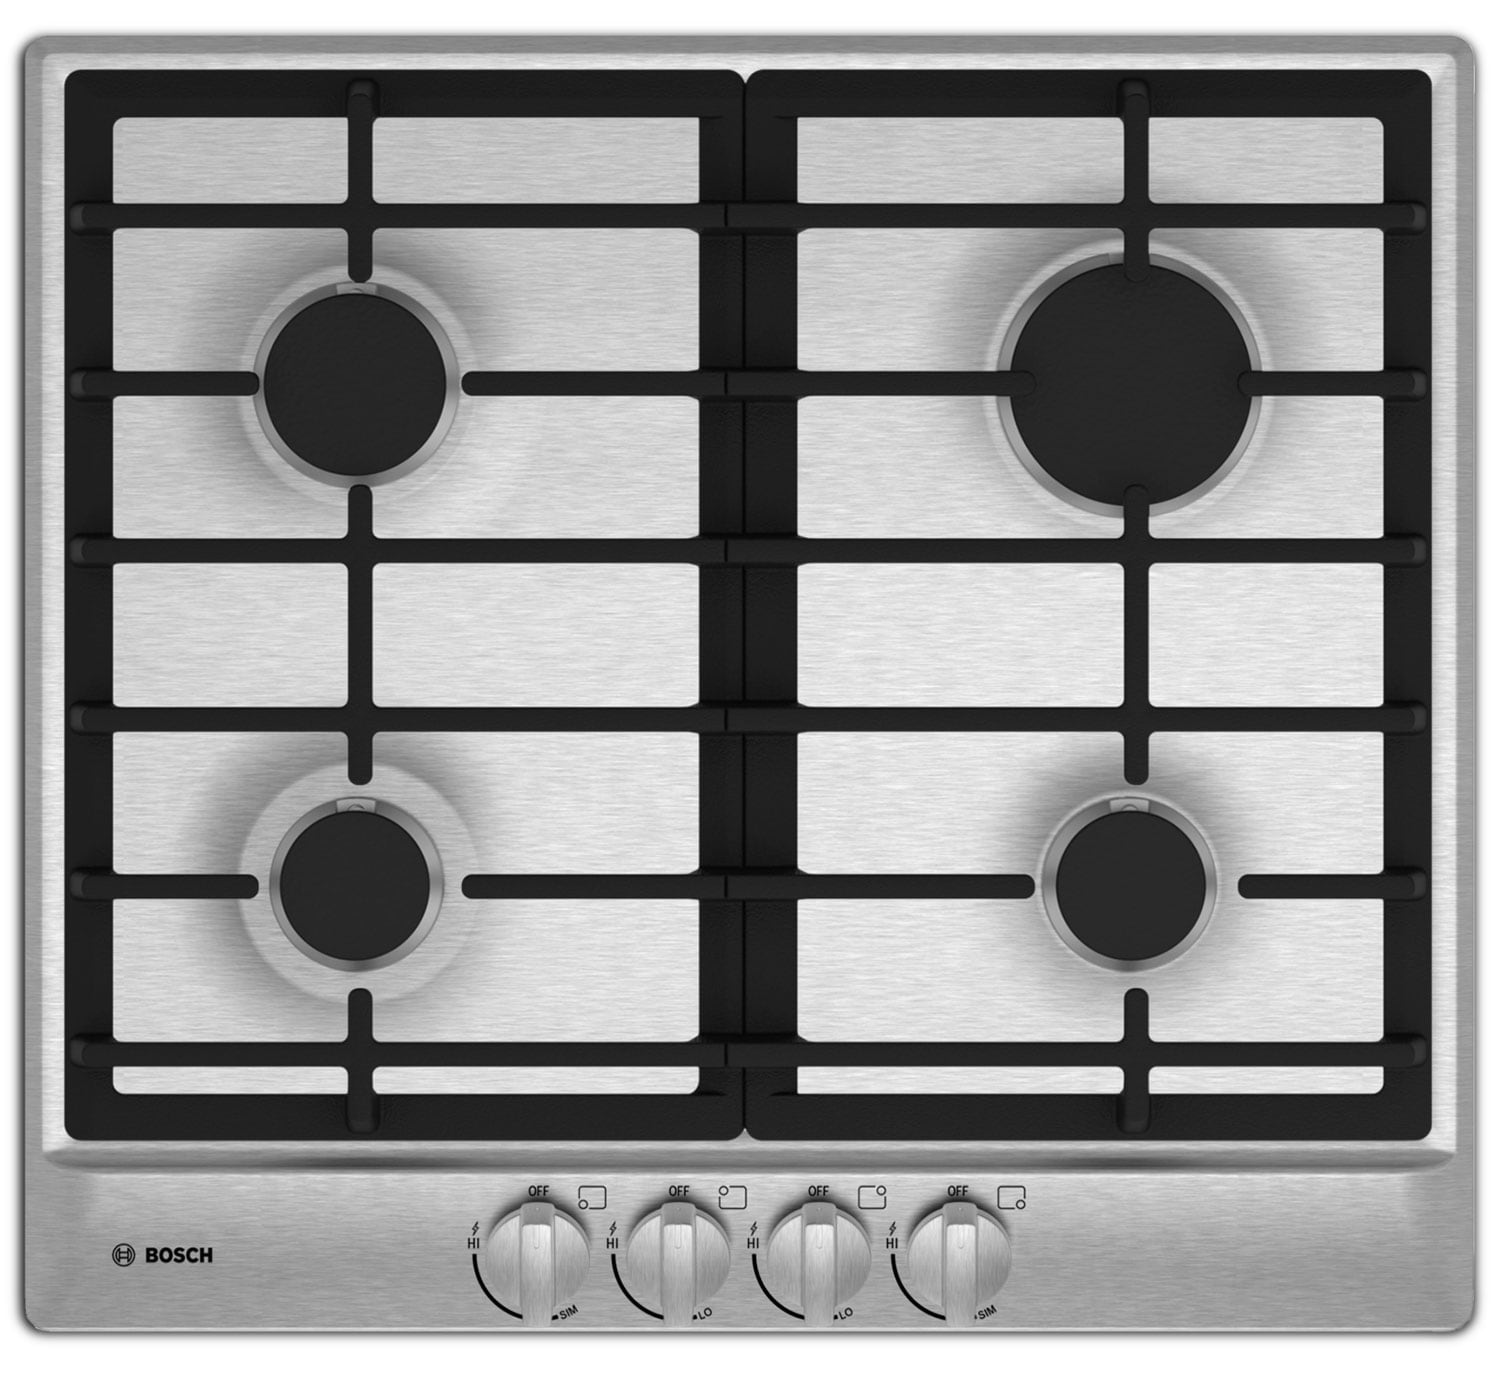 Cooking Products - Bosch Stainless Steel Gas Cooktop - NGM5455UC